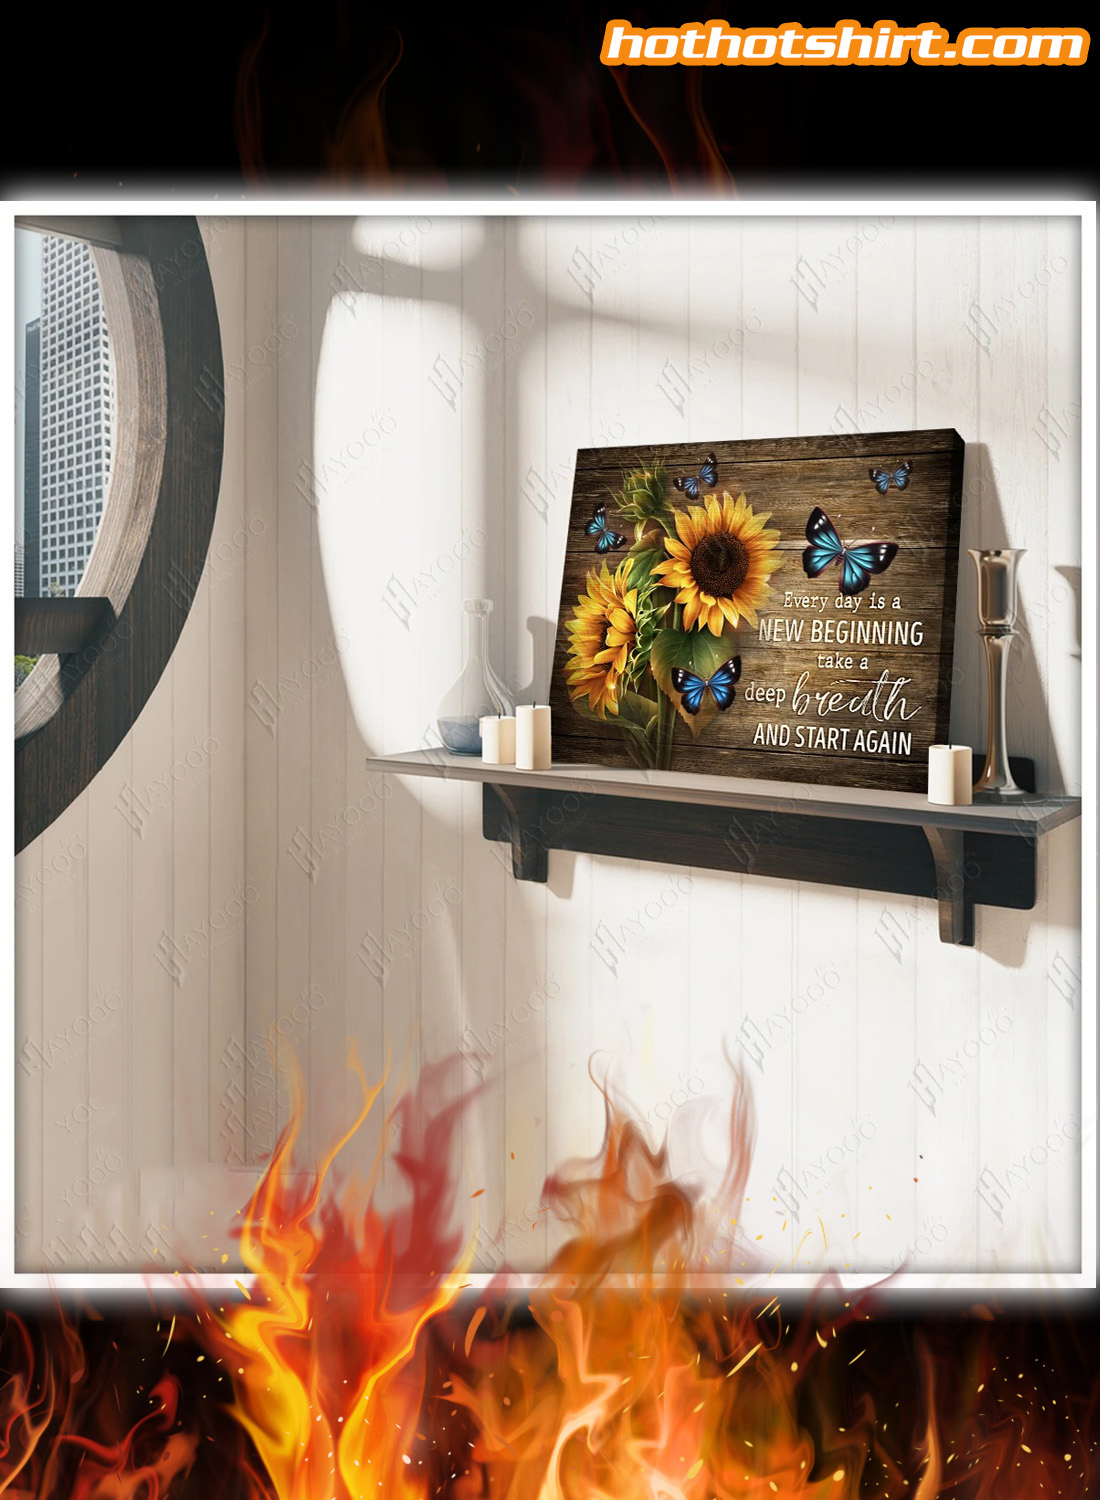 Sunflowers And Butterflies Every day is a new beginning take a deep breath and start again canvas prints and poster 2